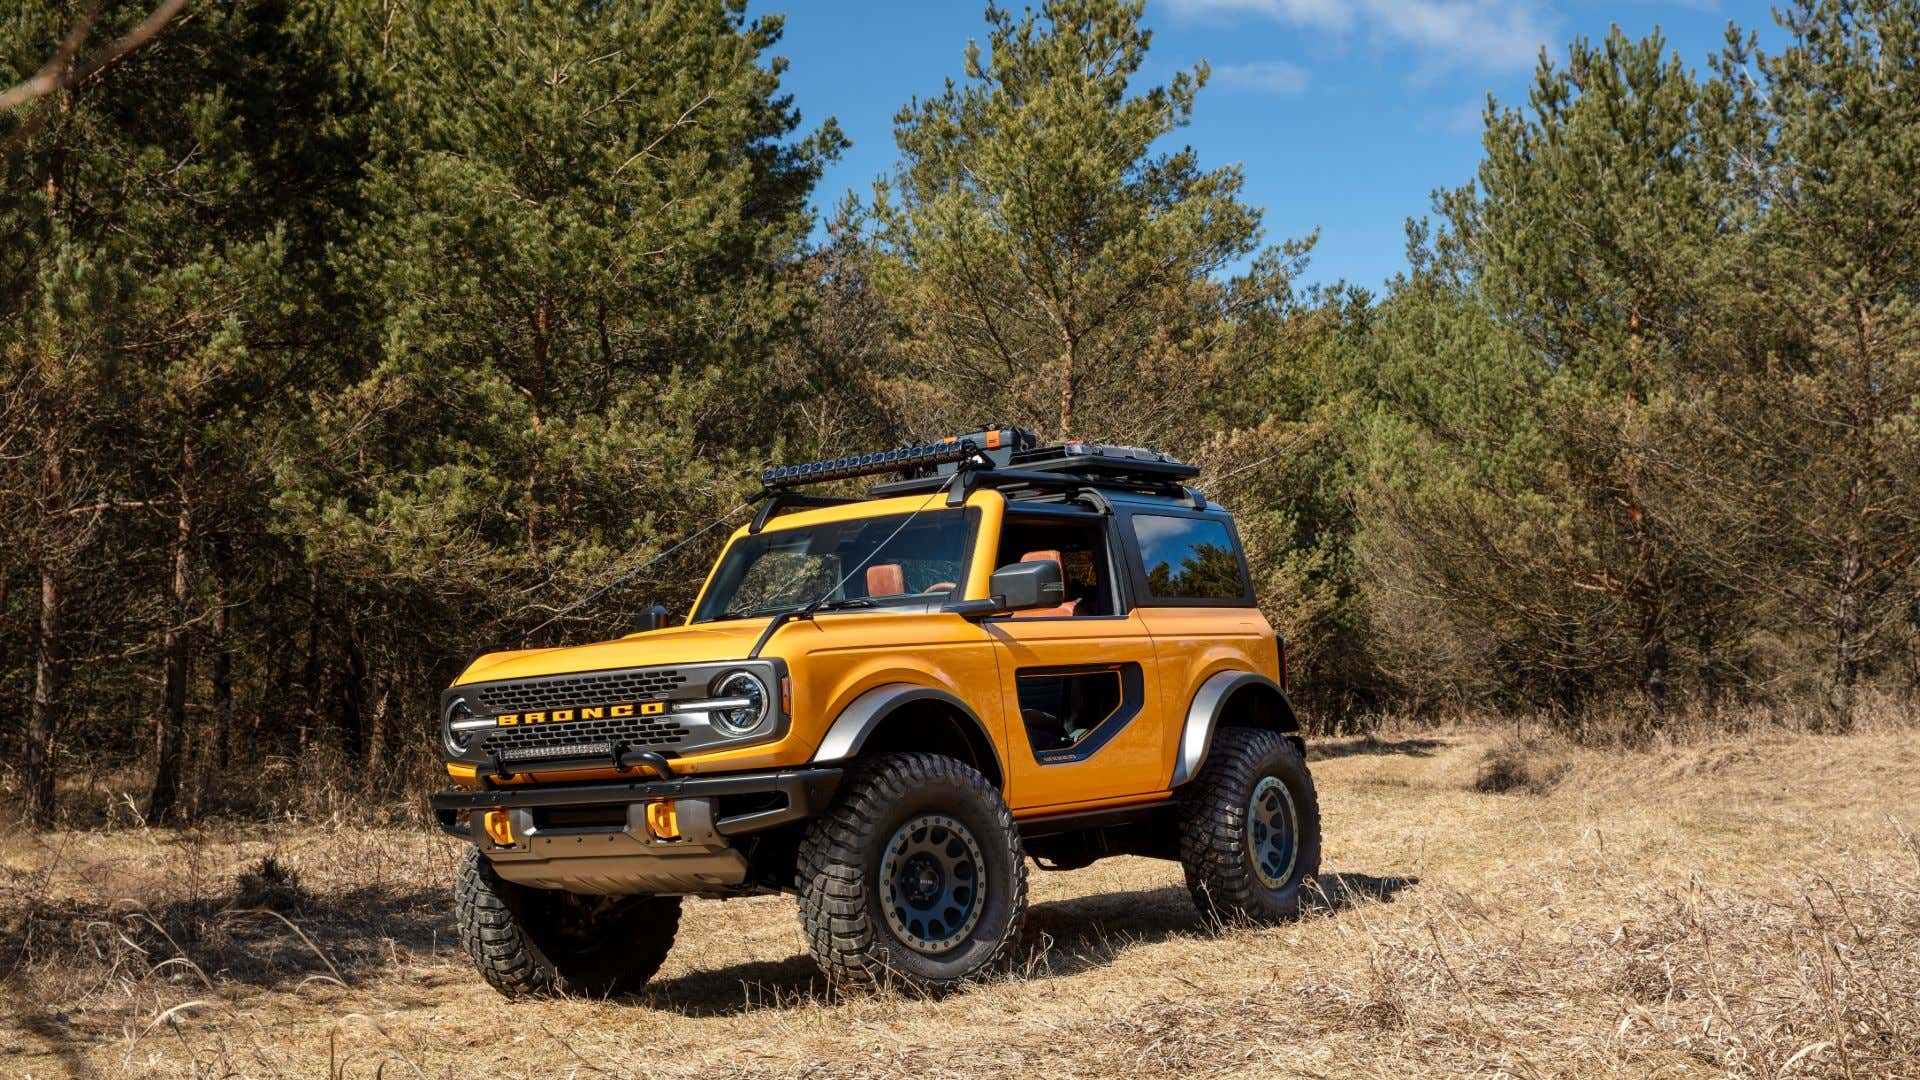 Who's gonna lease a Ford Bronco?